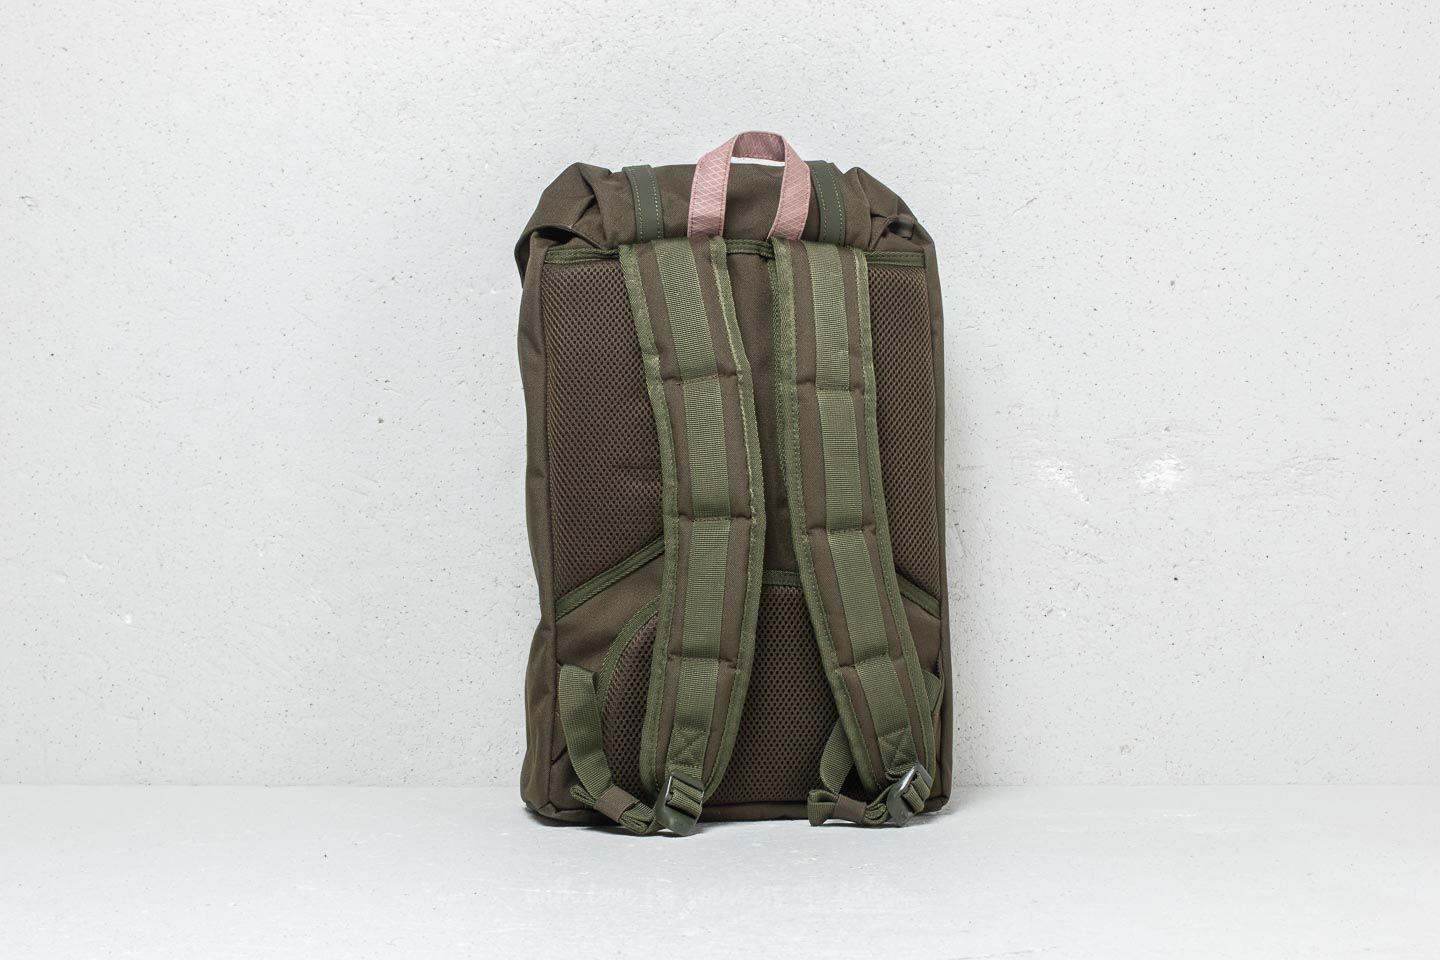 Lyst - Herschel Supply Co. Little America Mid Volume Backpack Forest ... fb46b0fe31